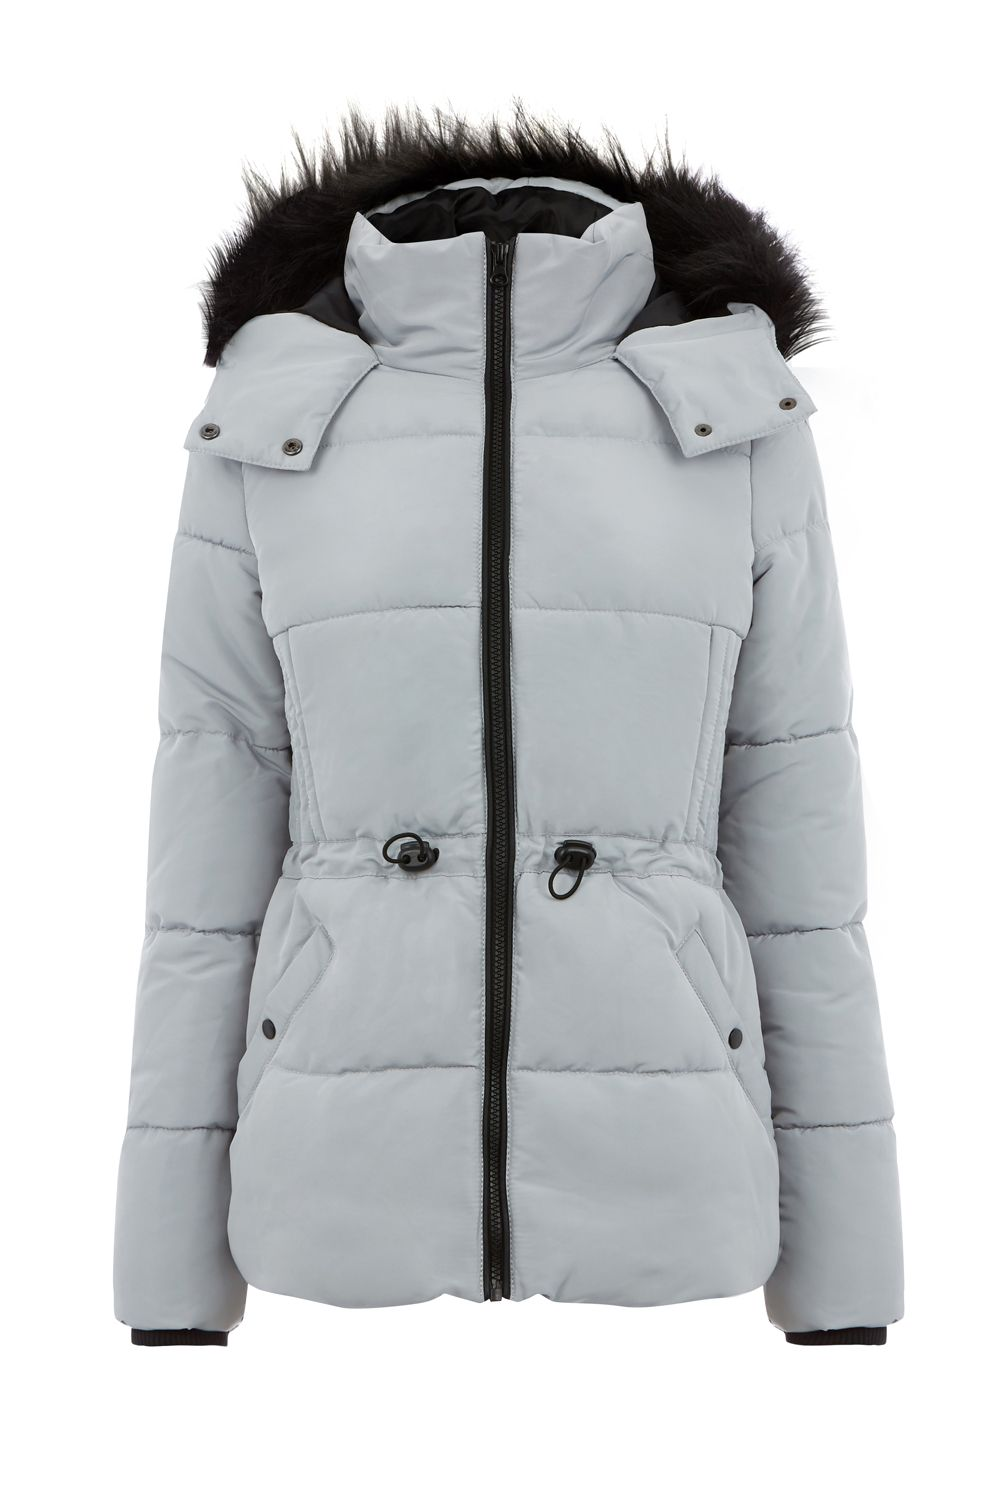 Oasis Sporty Padded Jacket, Silver